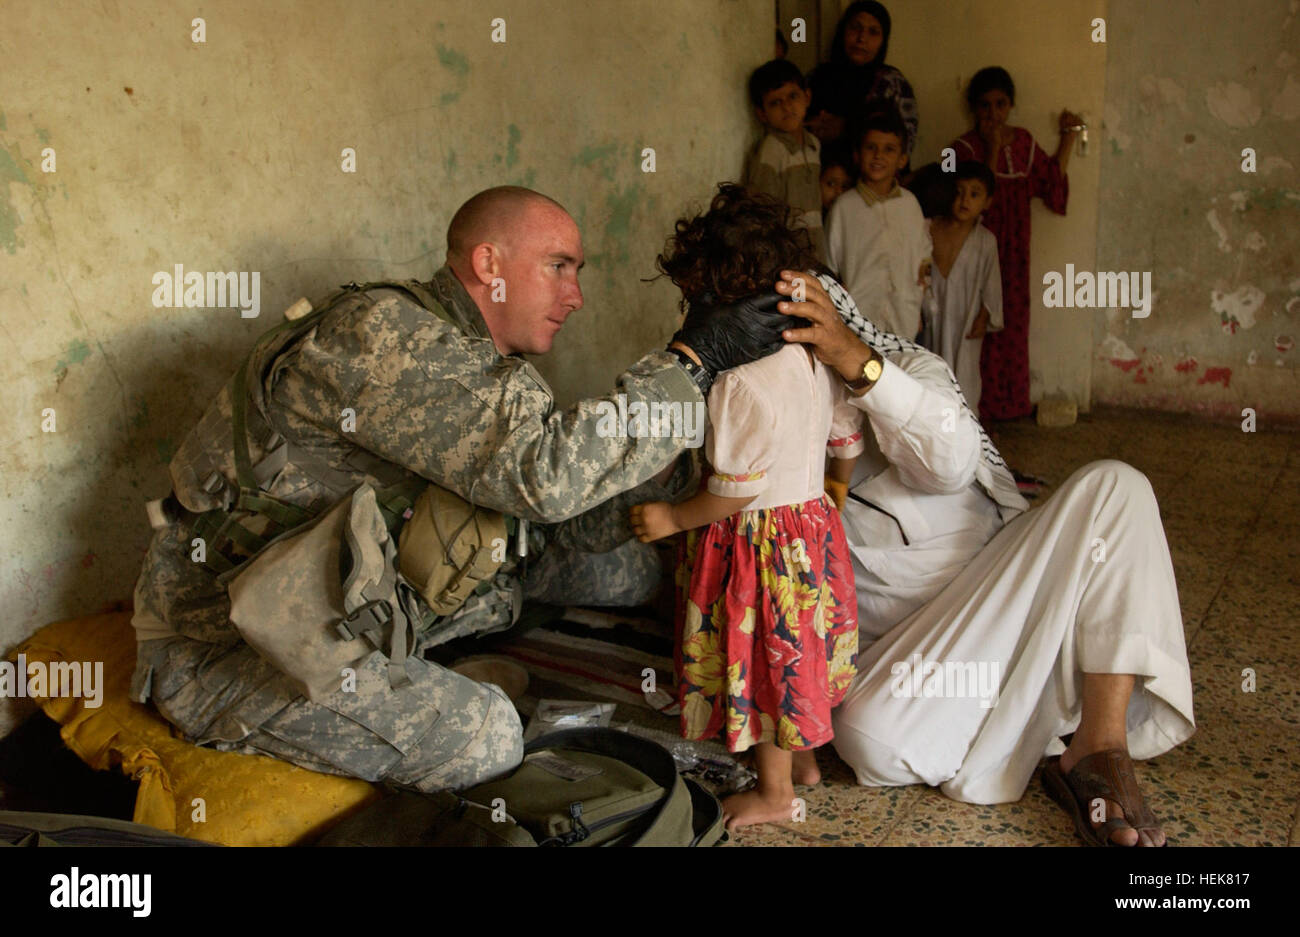 A medic with the 2nd Battalion, 506th Infantry Regiment, treats a young Iraqi girl with burns on her face in Al - Stock Image